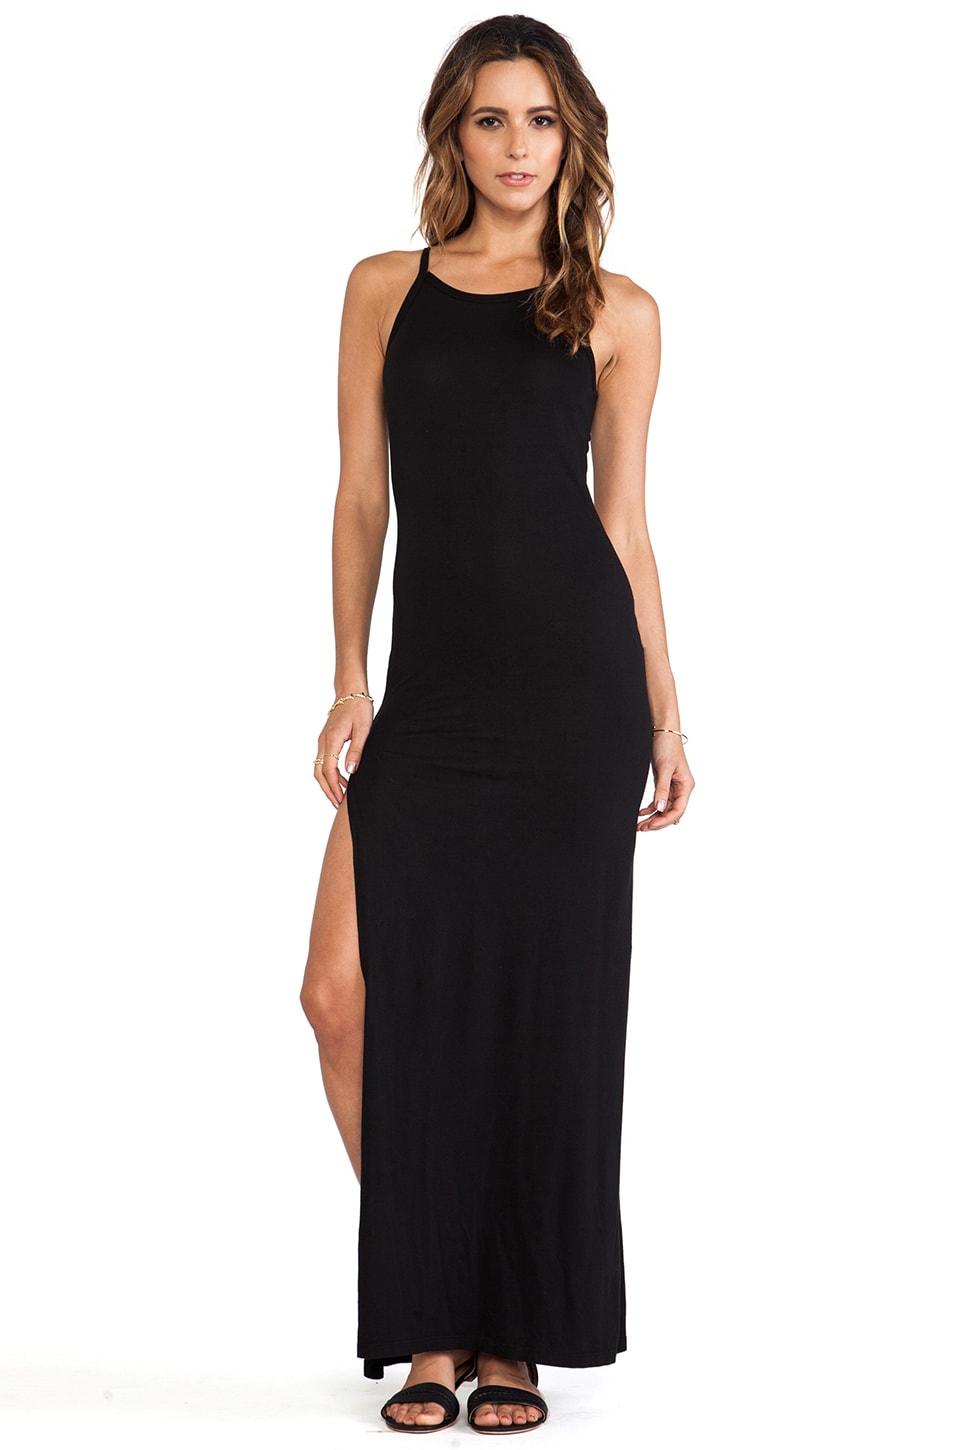 Daftbird High Neck Maxi Dress in Black